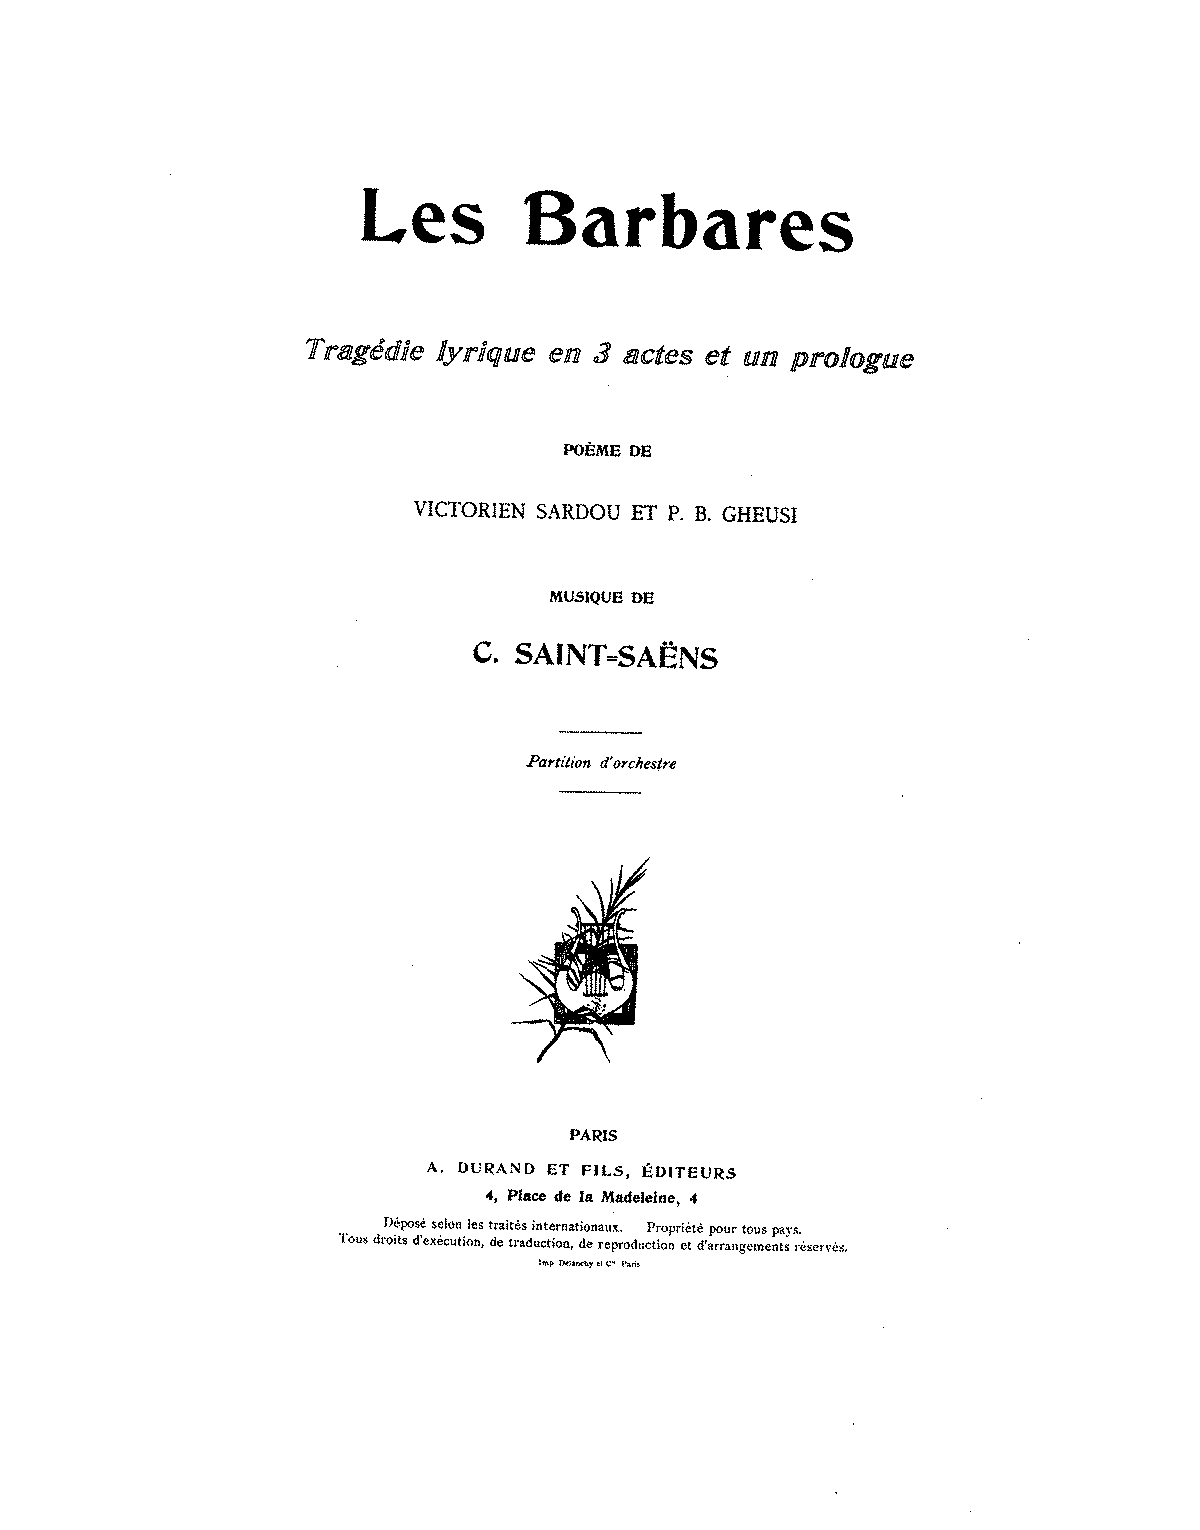 PMLP73977-Saint-Saens - Les Barbares - 1 - Prologue.pdf